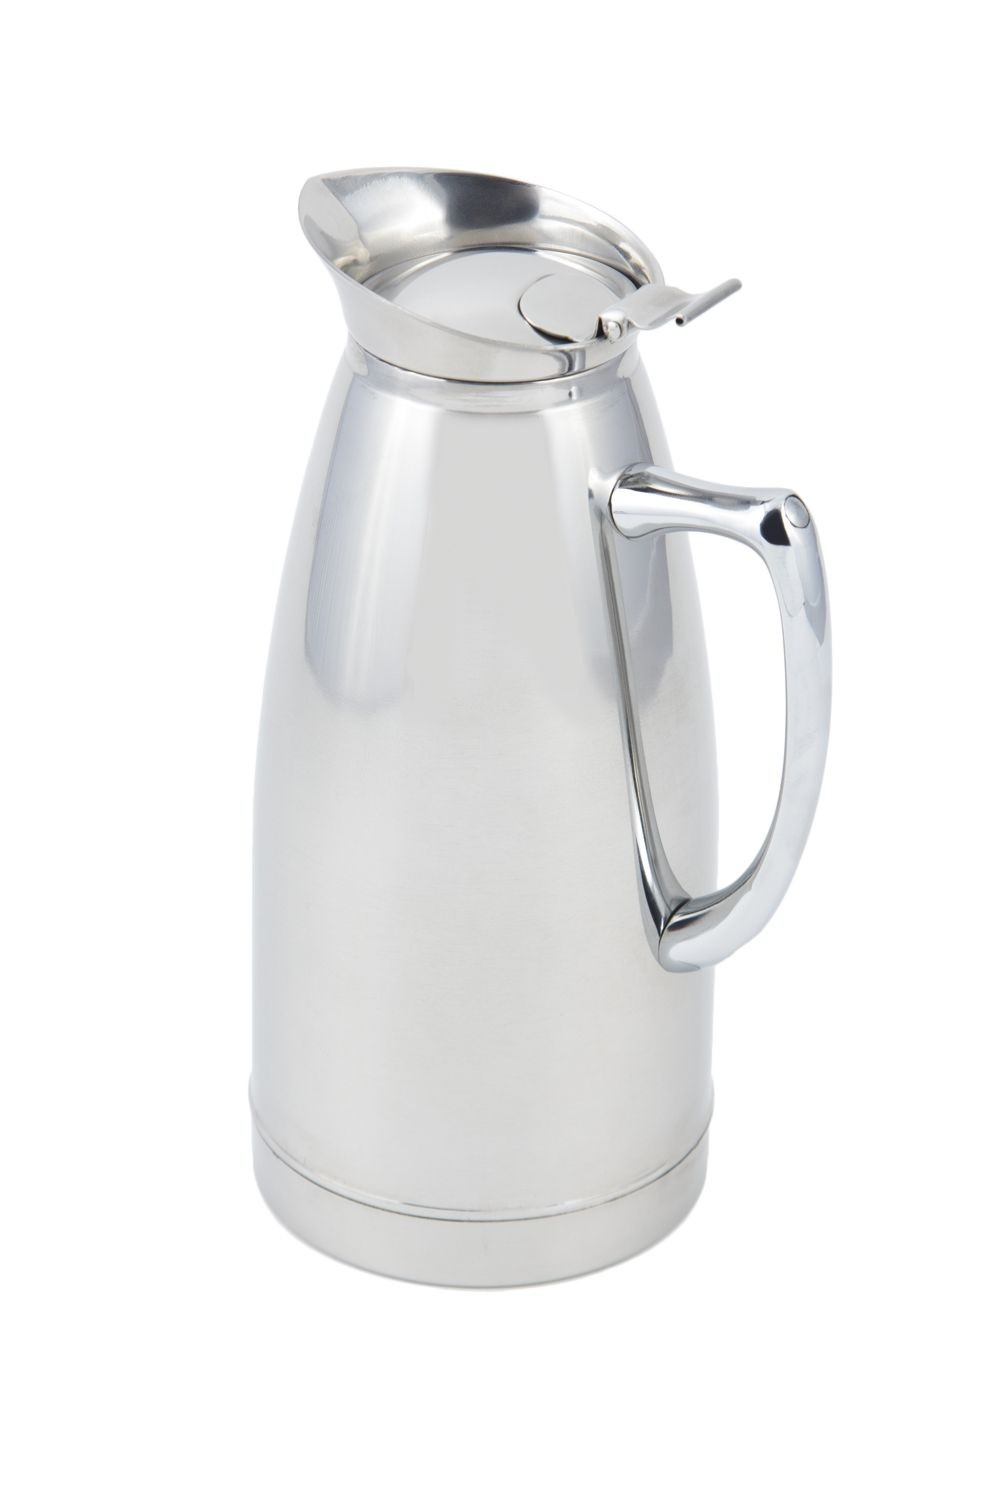 Bon Chef 4052 Stainless Steel Insulated Server, 1 Qt., Set of 6